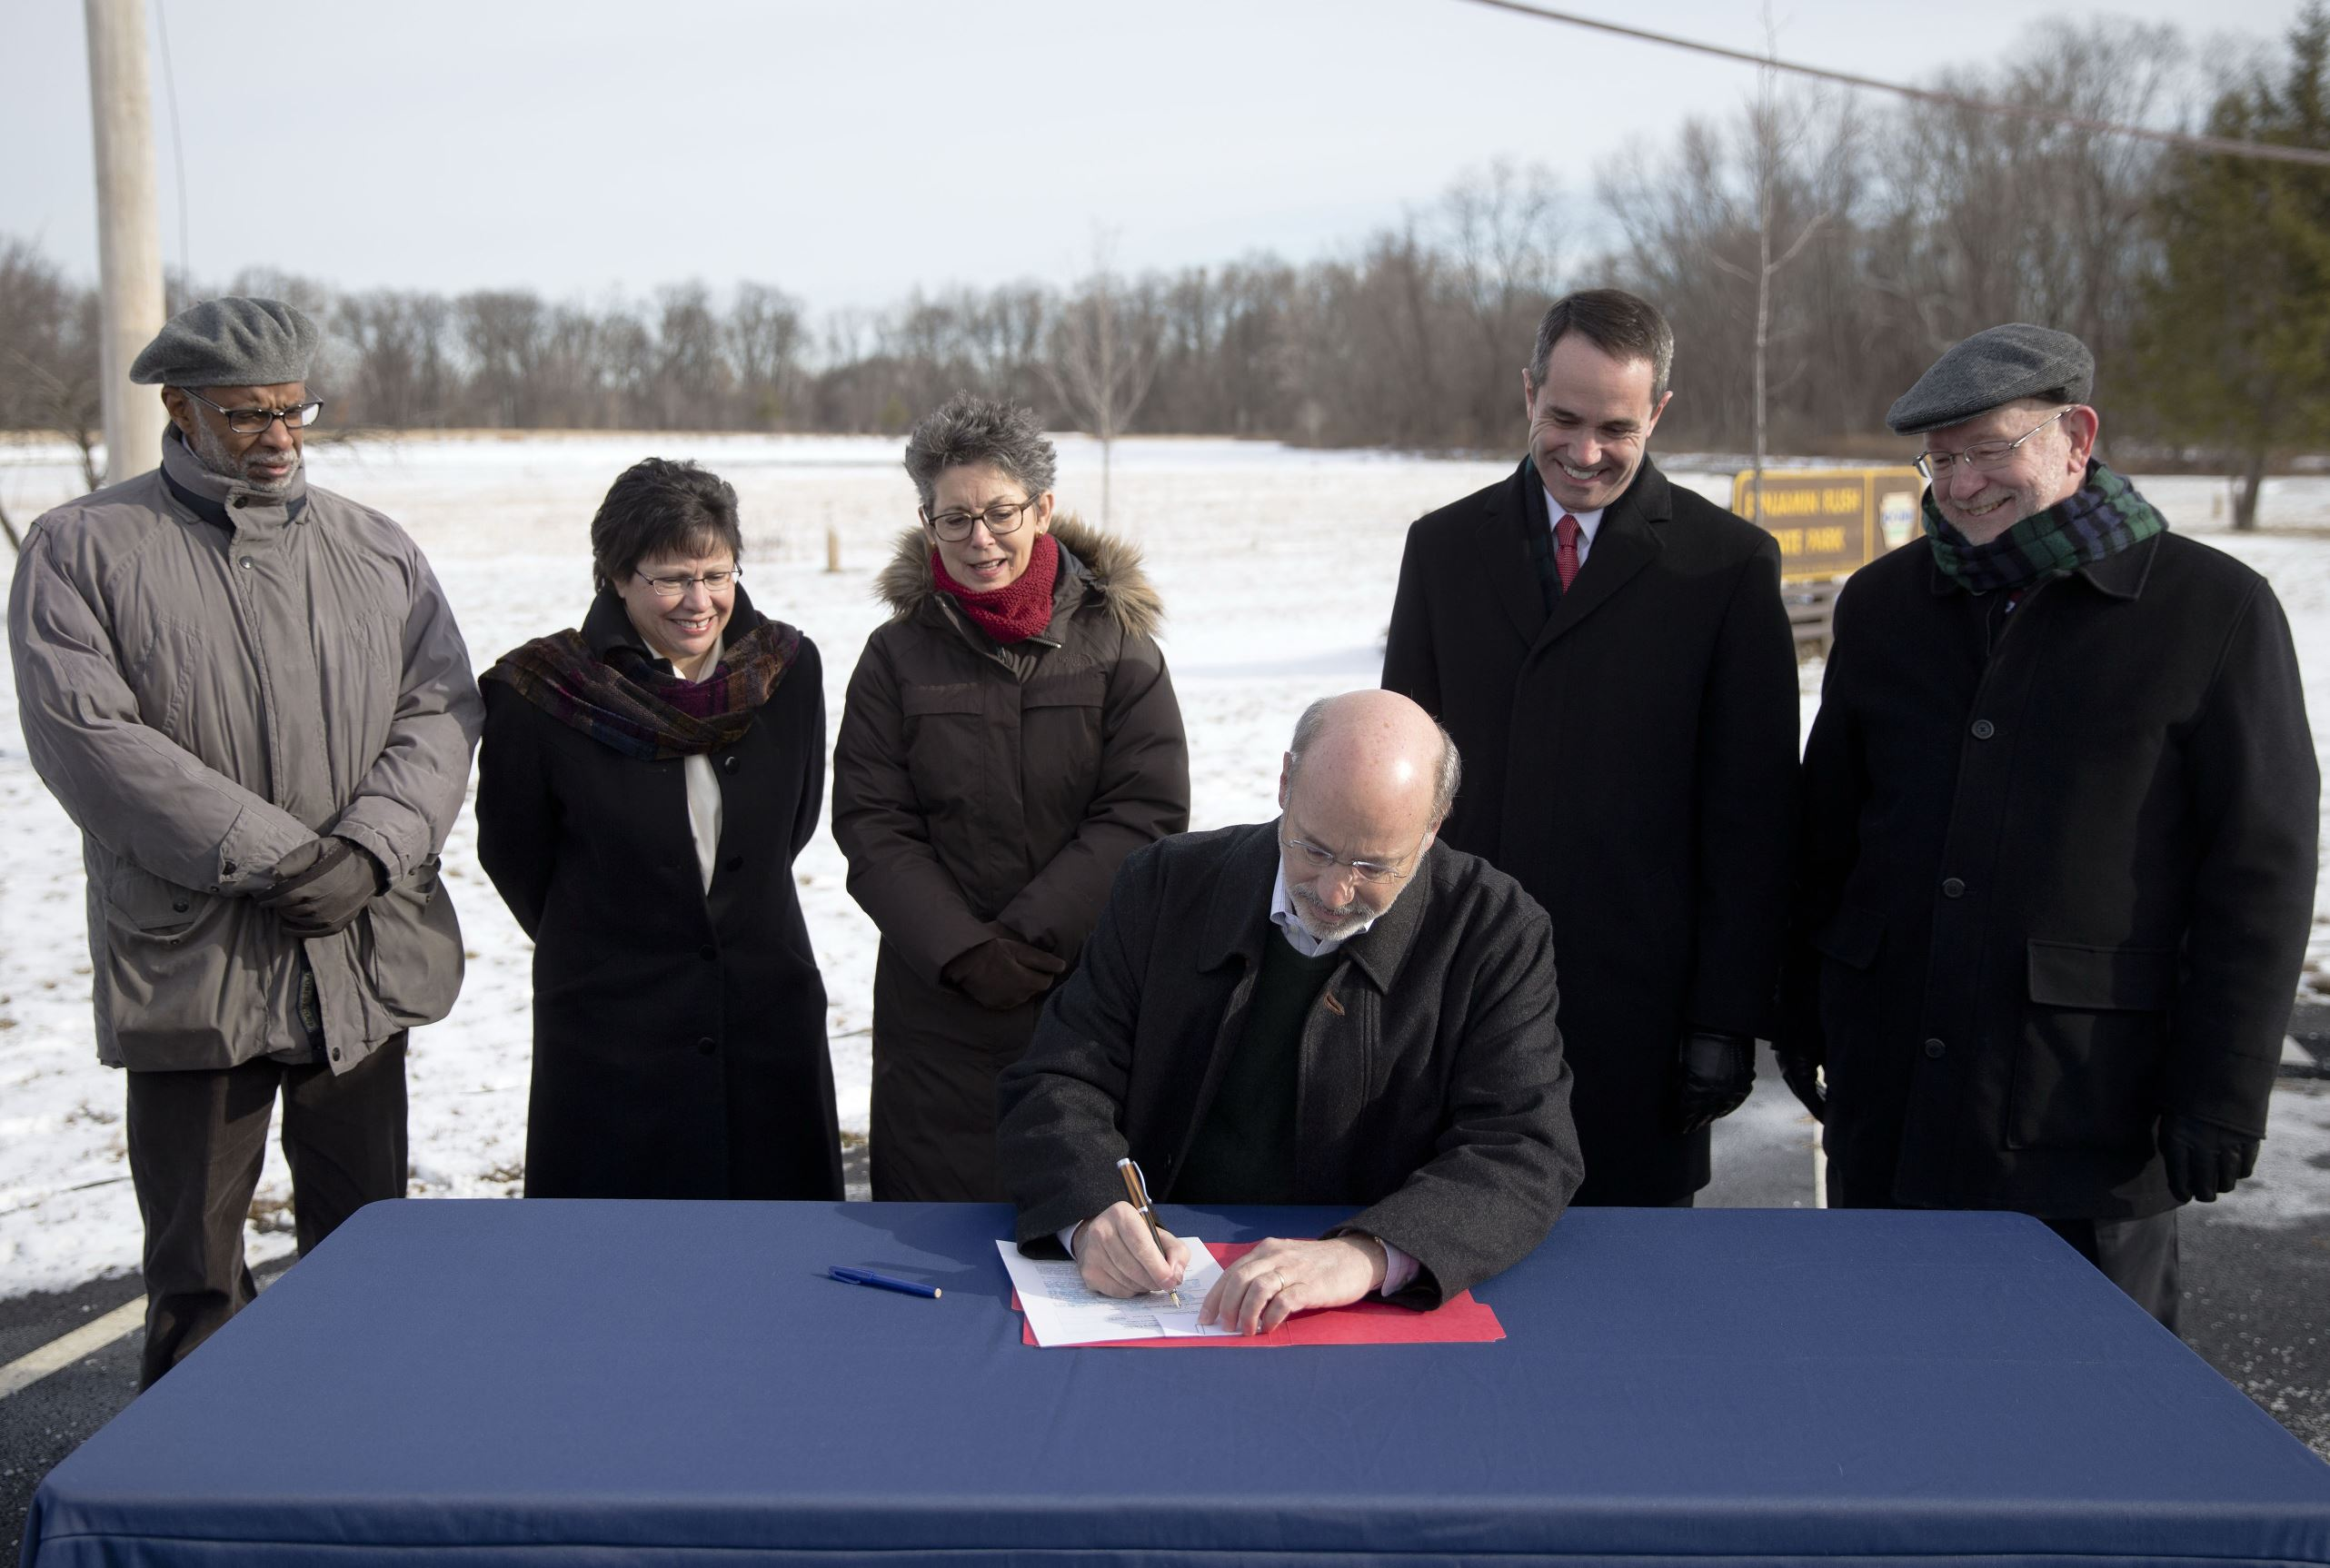 PEDF1126 Gov. Tom Wolf signs an executive order restoring a moratorium on new drilling leases involving public lands, Thursday, Jan. 29, 2015, at the Benjamin Rush State Park in Philadelphia. T